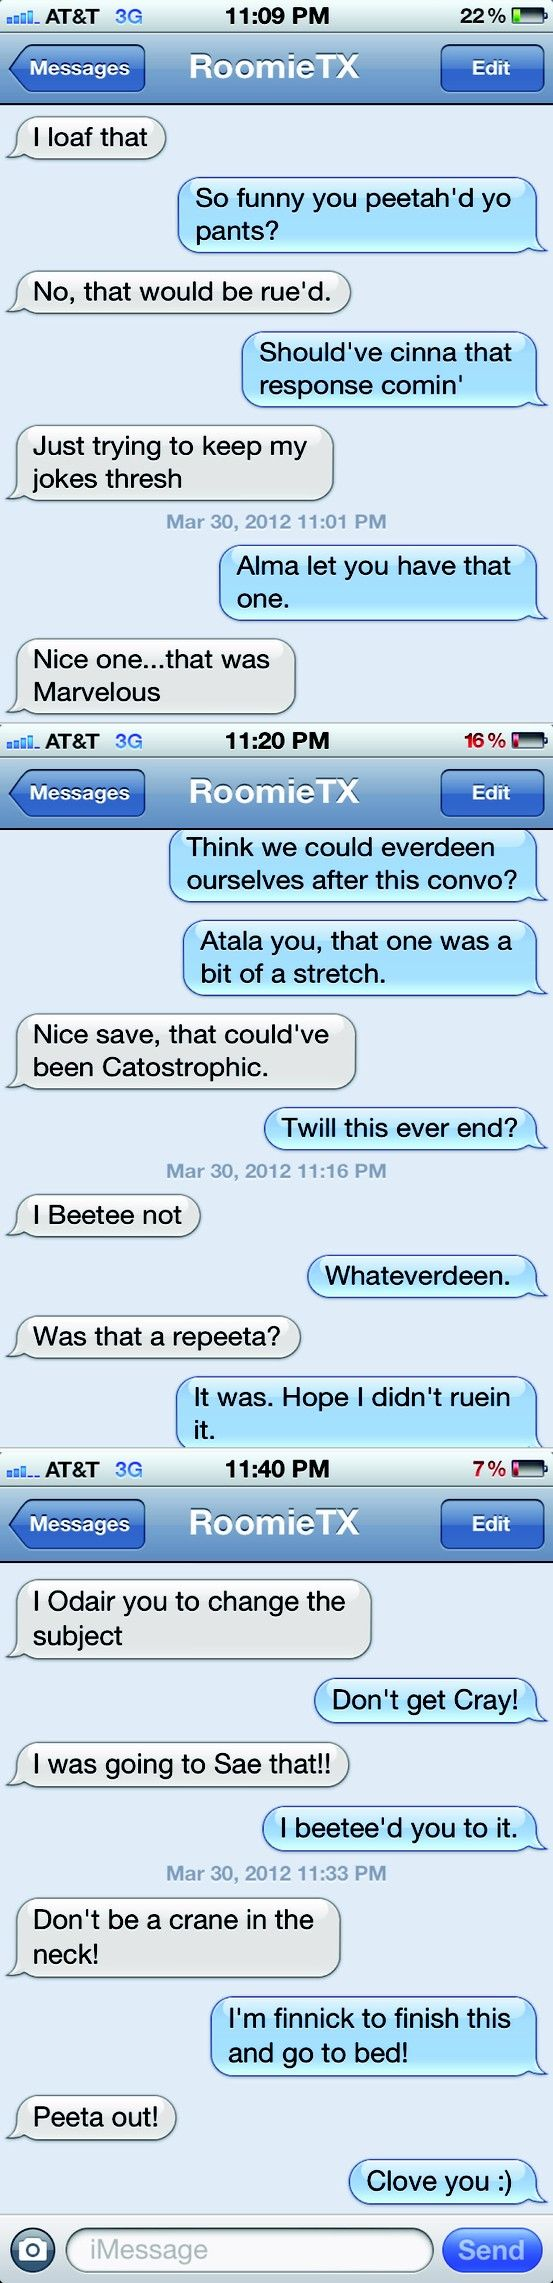 Hunger Games Puns.. love it!!!: Games Text, Amazing, I Need Friends, Awesome, Hunger Games, Yesss, The Hunger Game